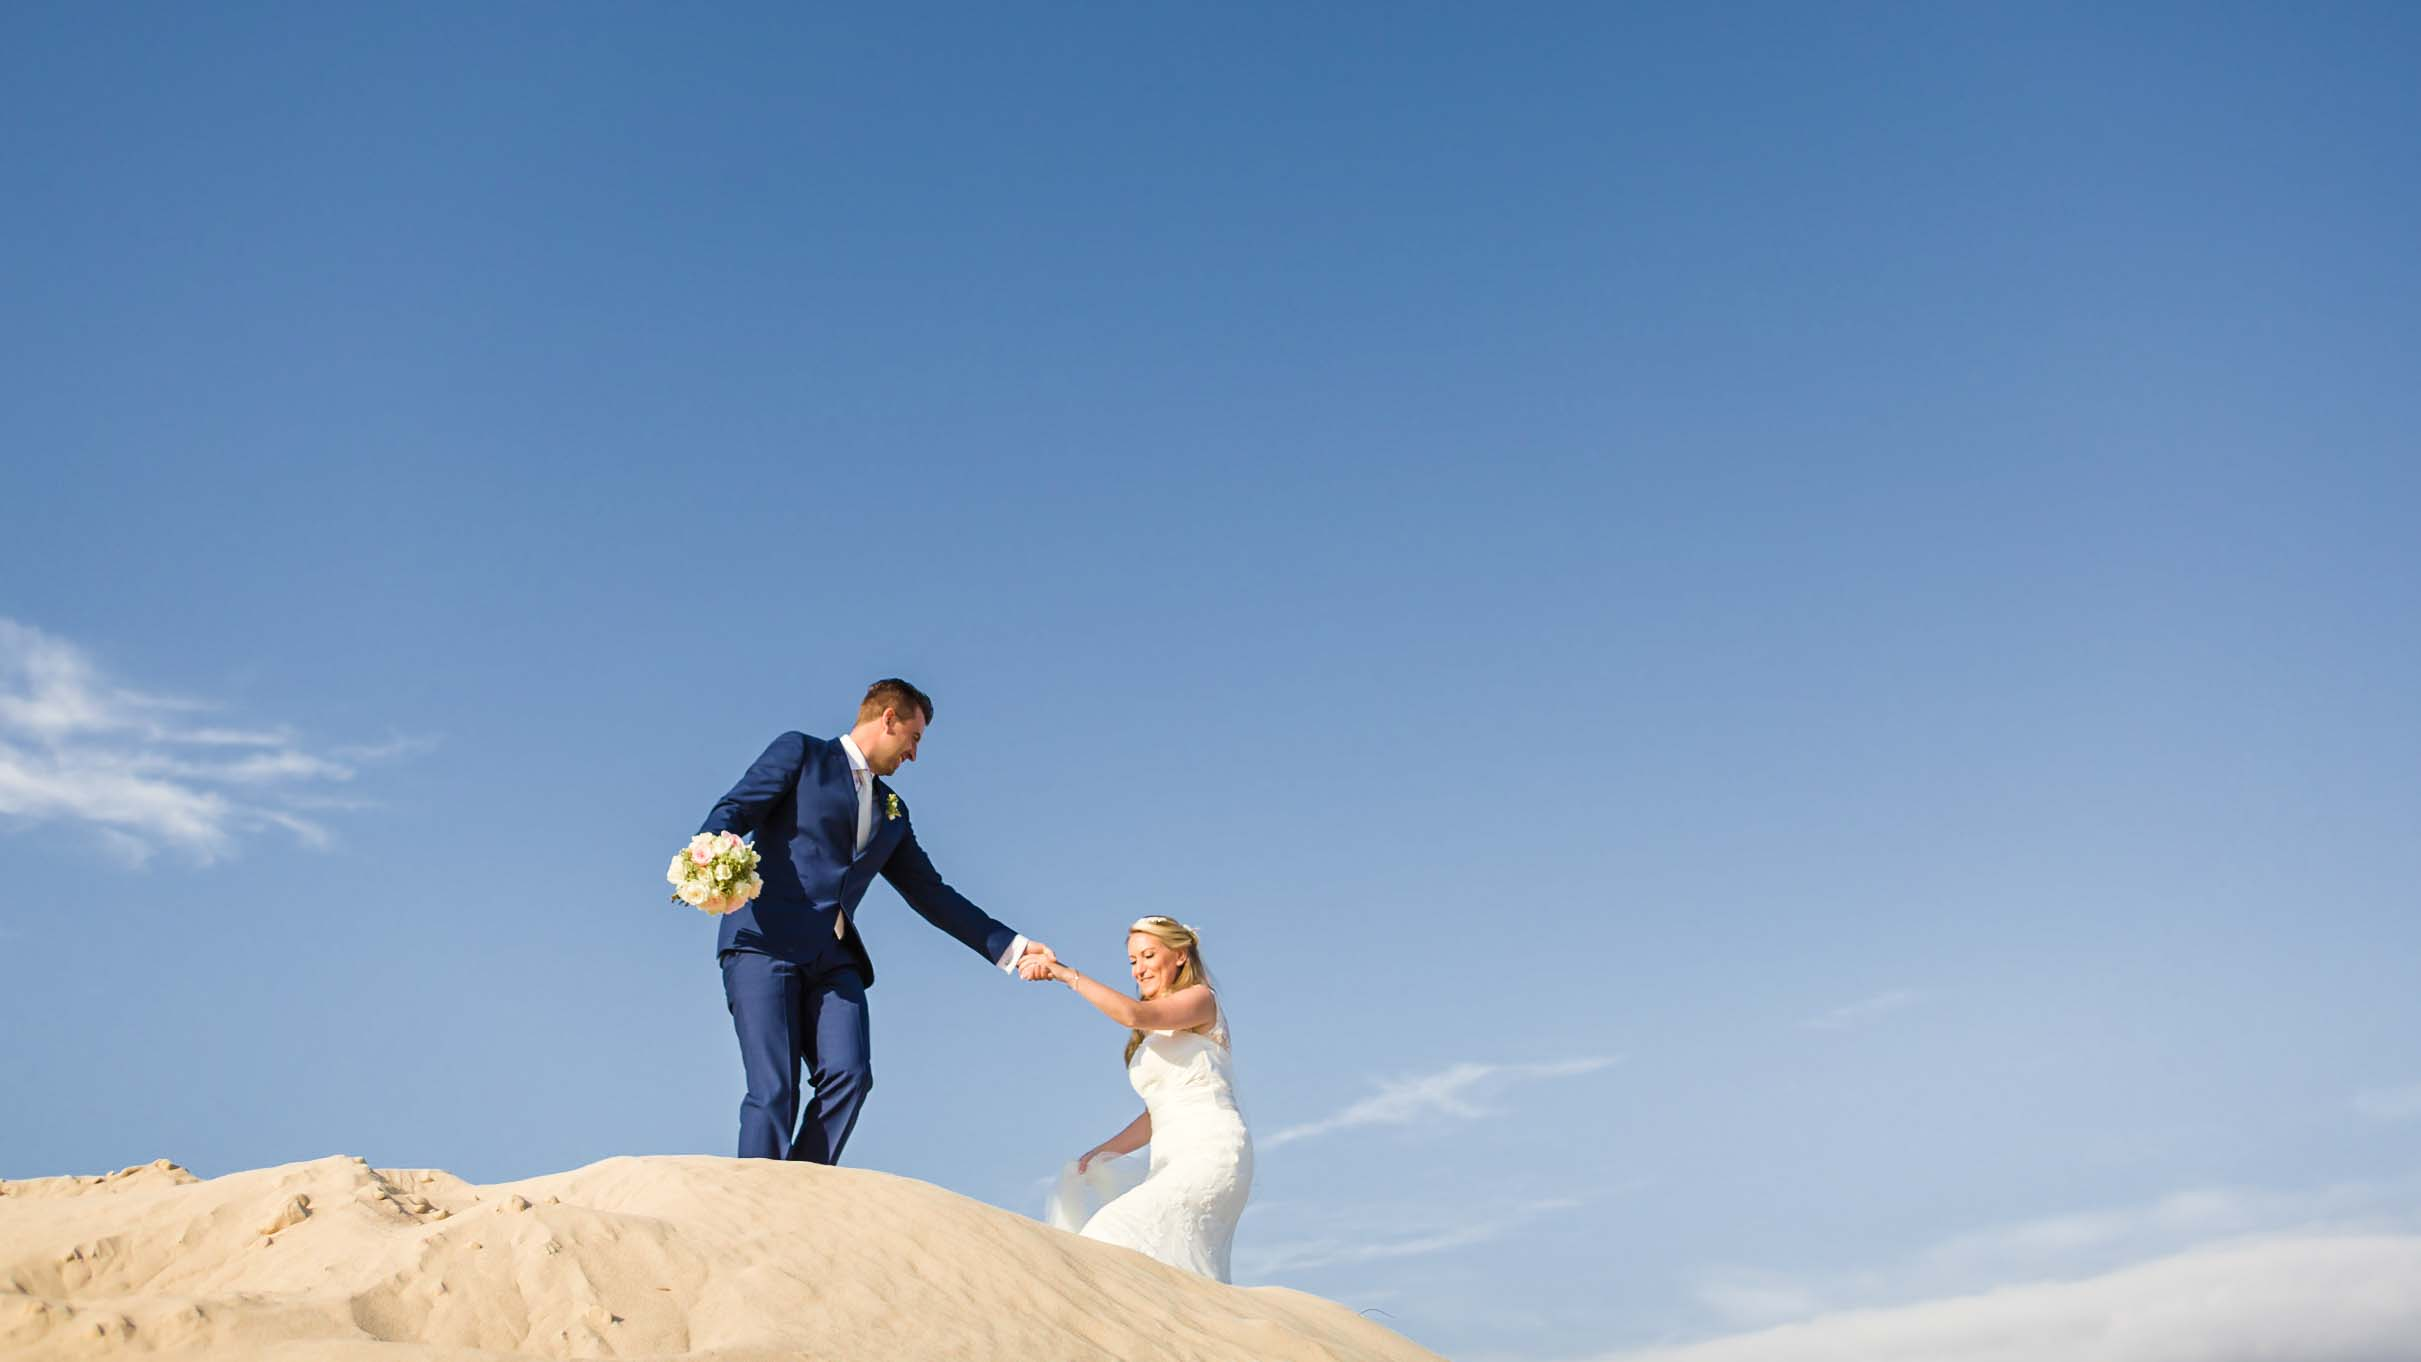 bride and groom hand in hand on sand dunes